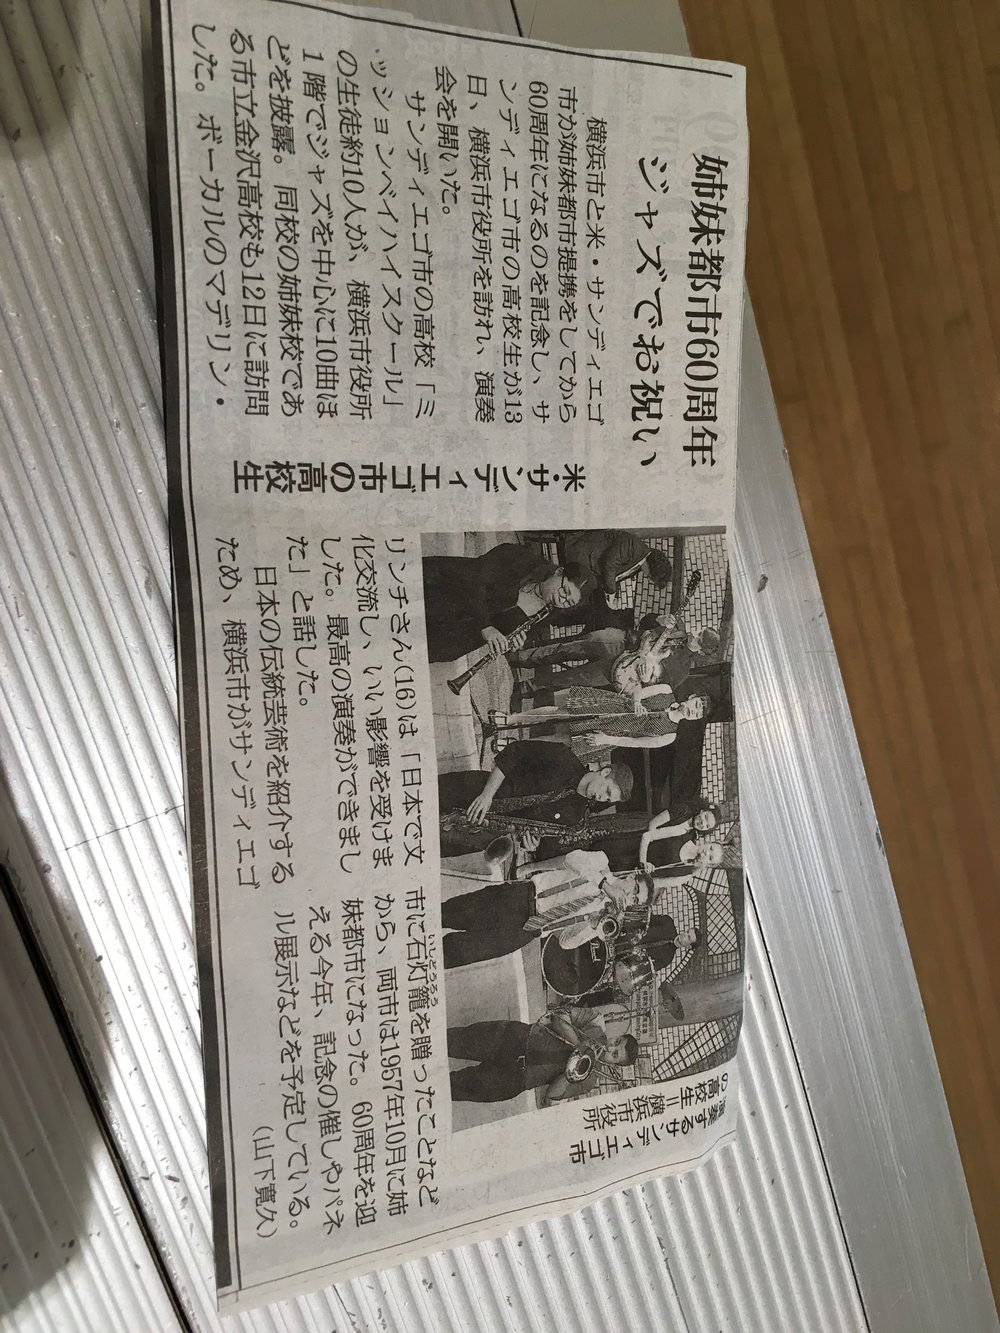 We made the Yokohama news!